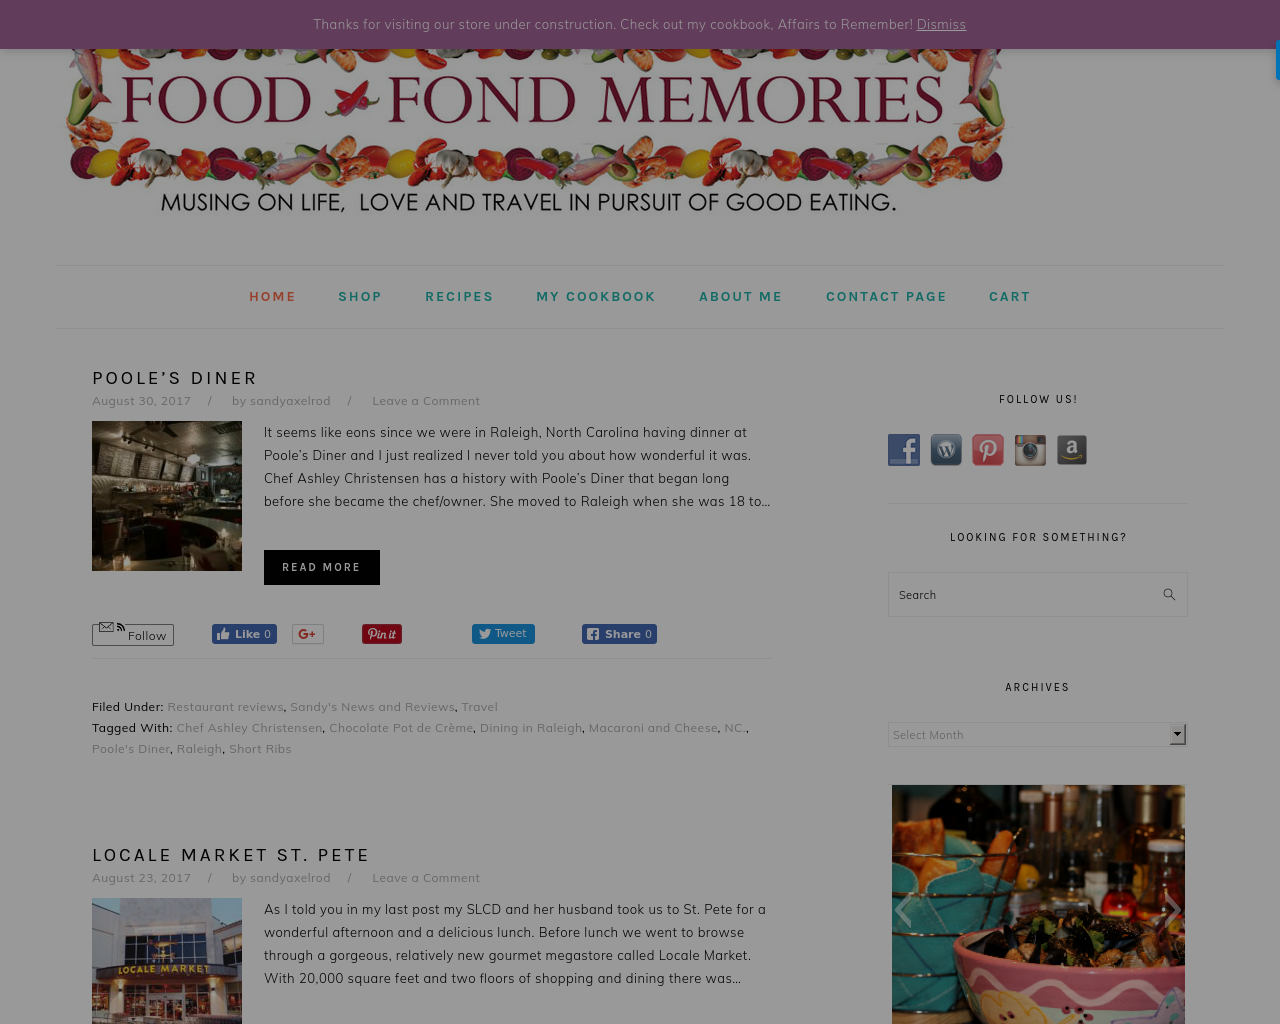 FOOD-AND-FOND-MEMORIES-Advertising-Reviews-Pricing